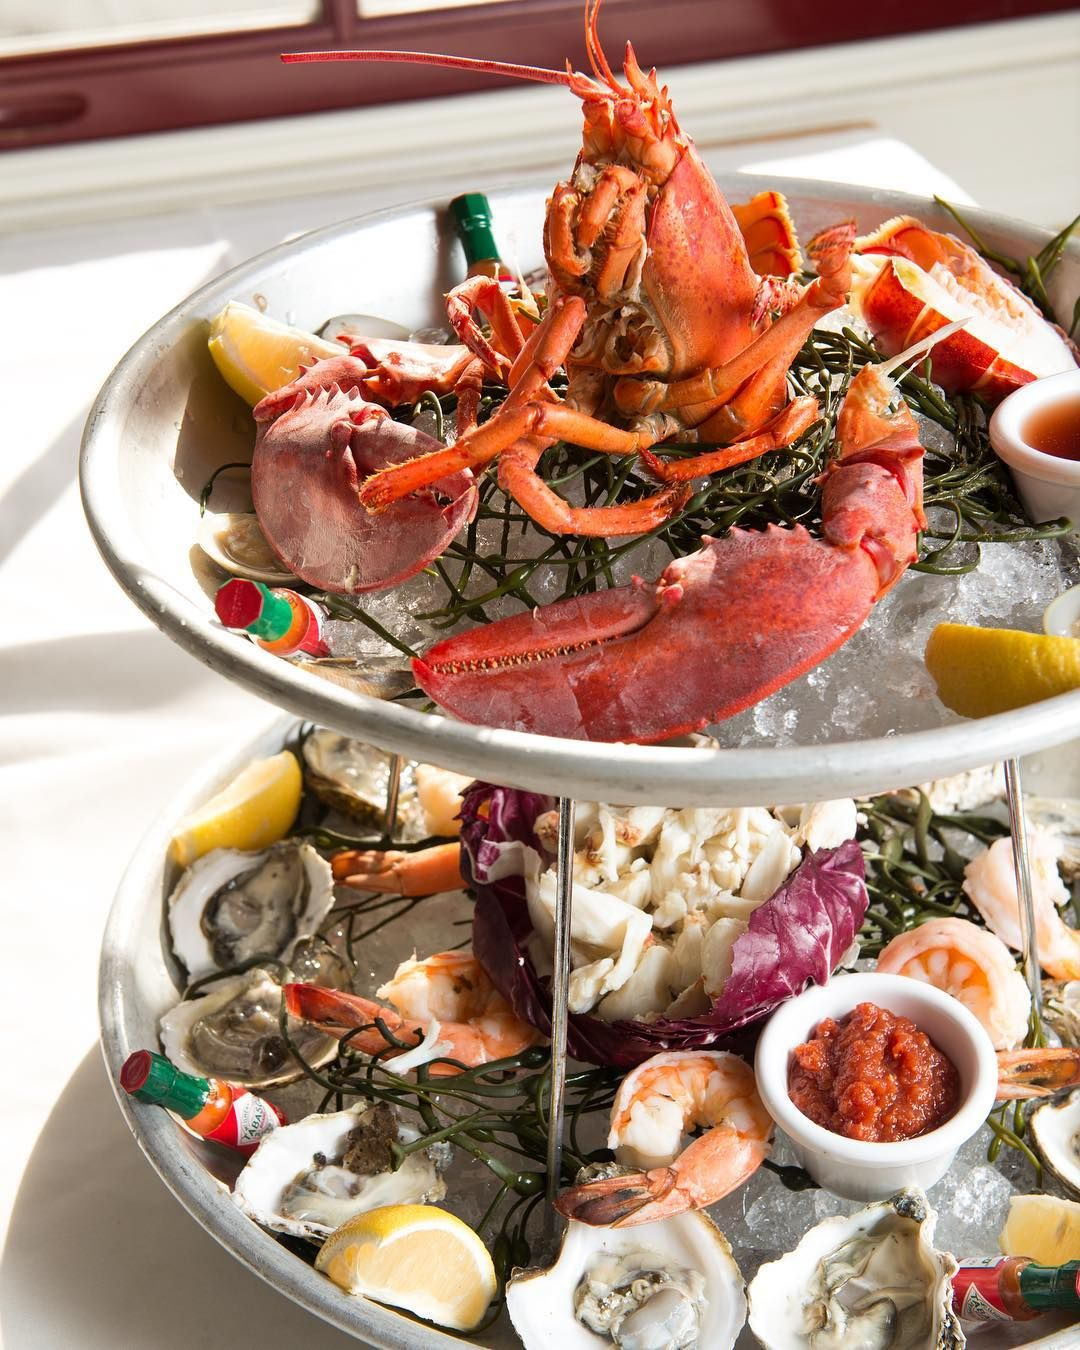 Thursday Clam Bakes Are Back May 4th September 28th Let S Get Cracking Loganinn Loganinnpa Landmarkhospitality Newhope Newhope Eat Food Clam Bake